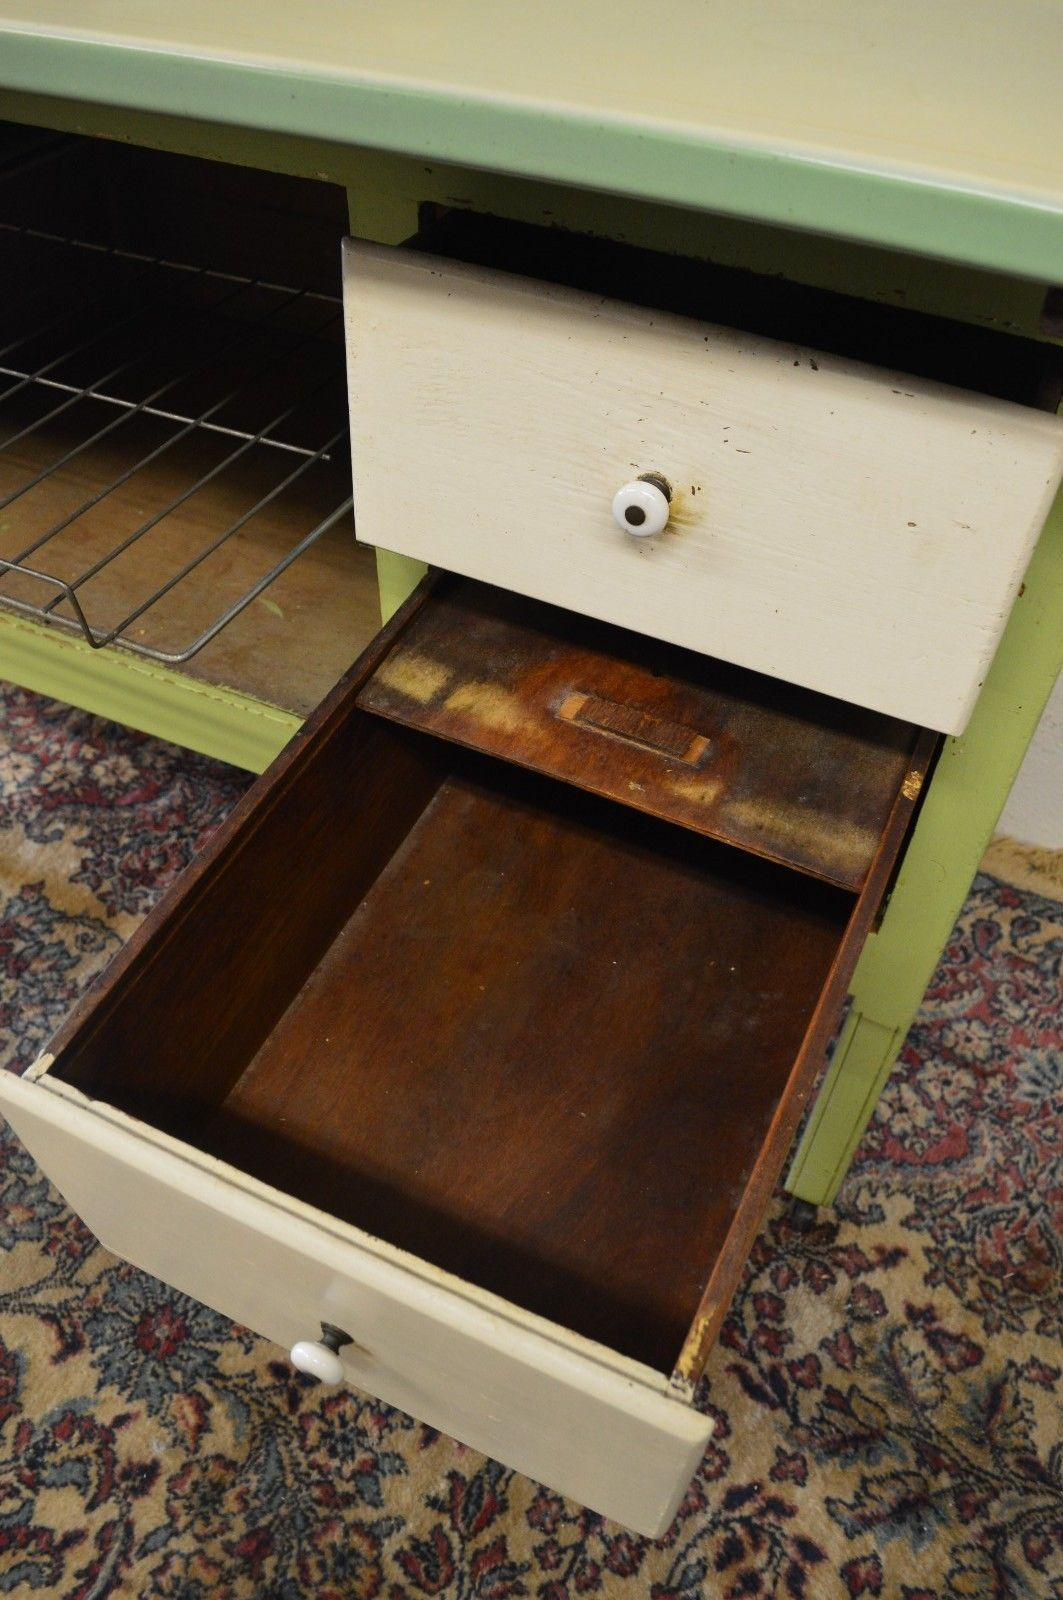 Antique 1920's Hoosier Cabinet with Flour Sifter Porcelain Top Vintage - Antique 1920's Hoosier Cabinet With Flour Sifter Porcelain Top